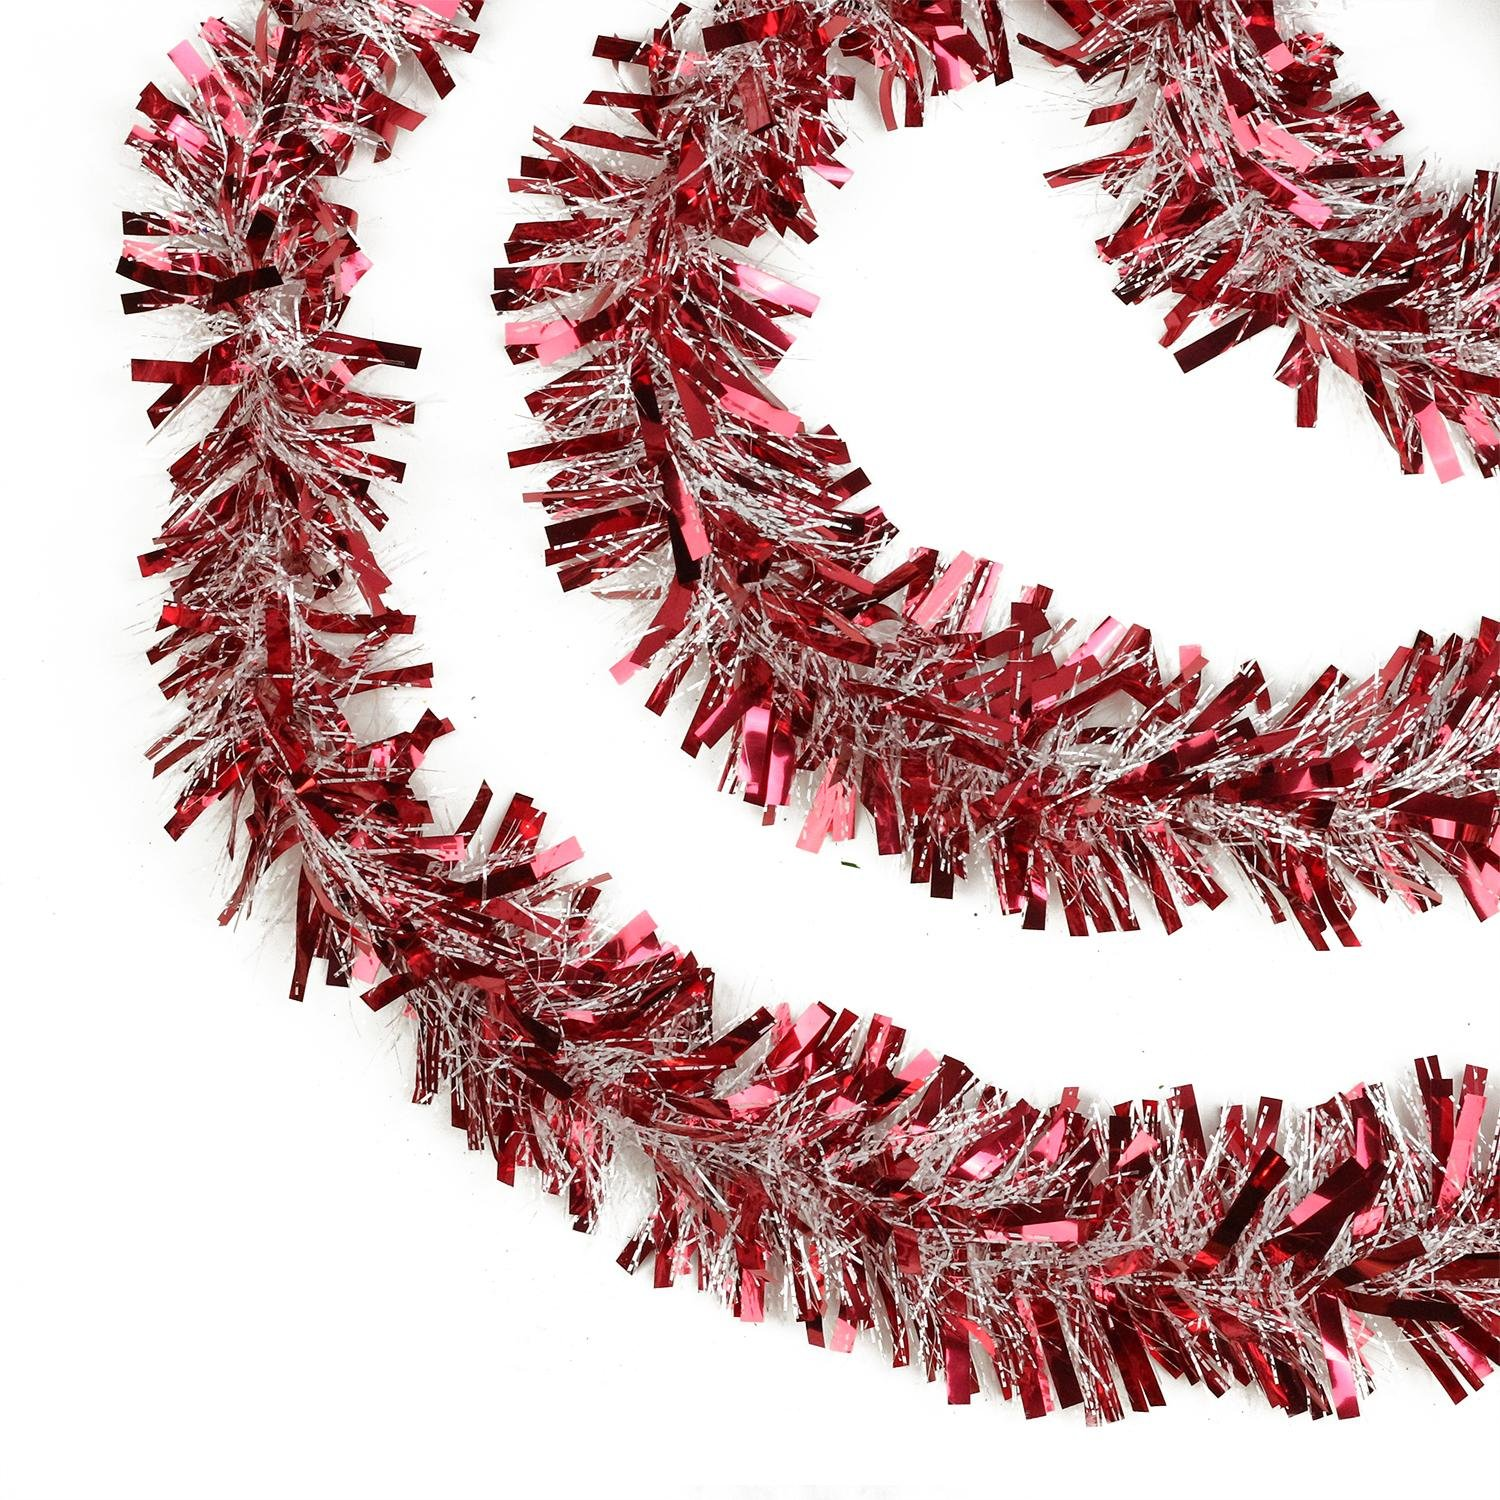 Northlight Festive Thick Cut Christmas Tinsel Garland Unlit-6 Ply, 50', Red/White 50' NORTHLIGHT K00370